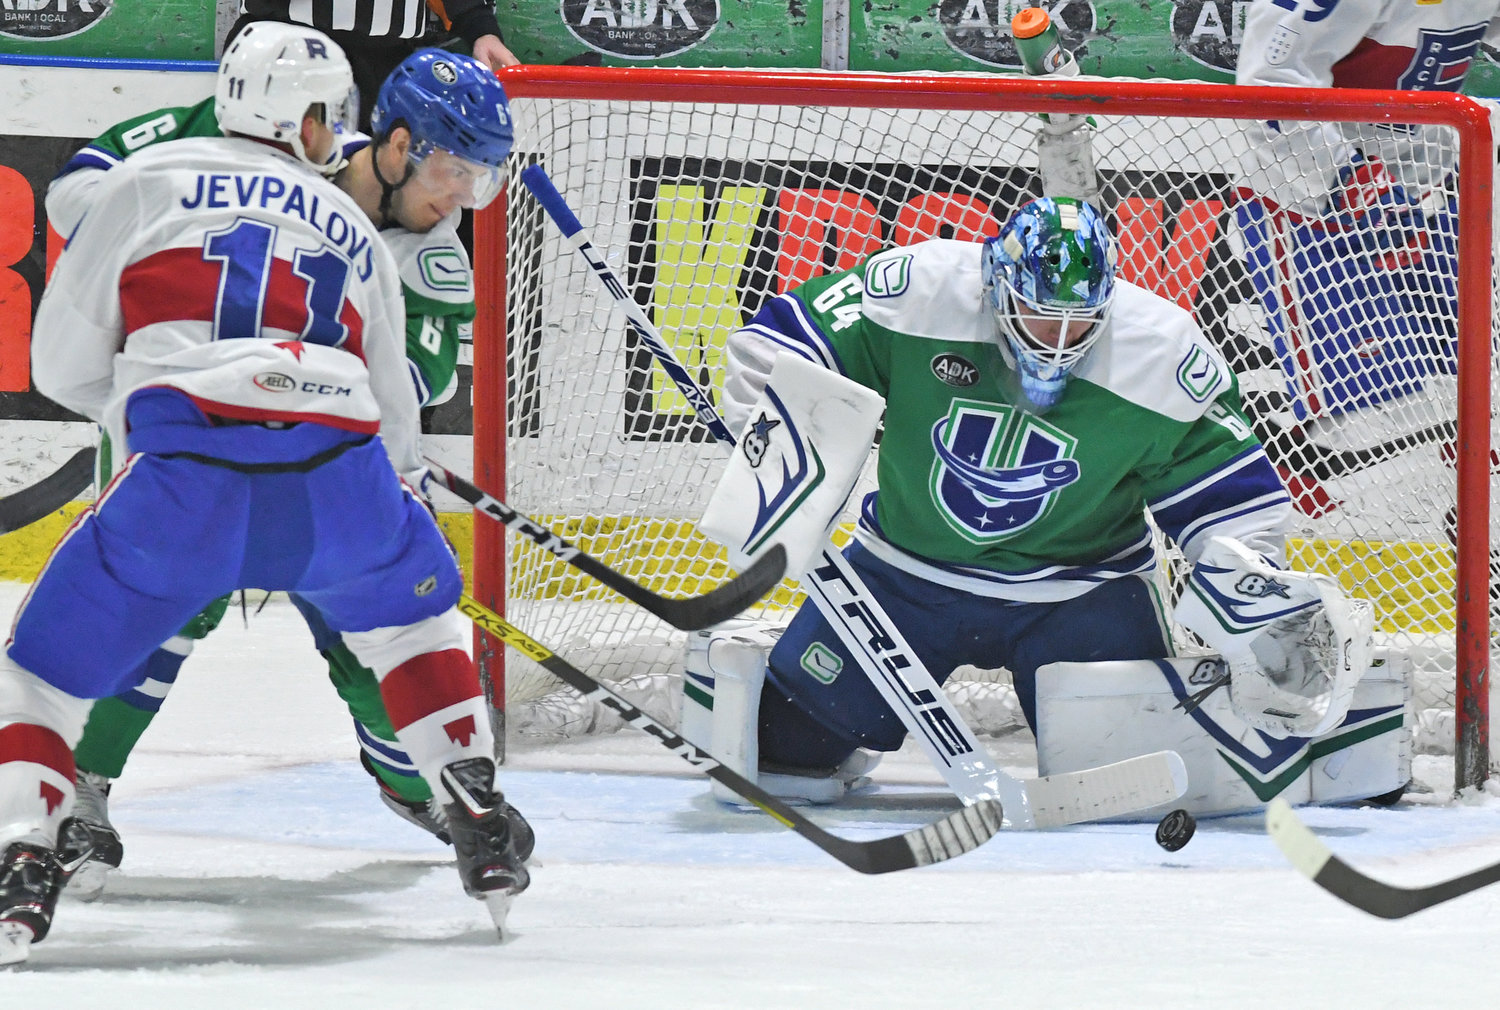 Laval #11 and Comets #6 in front of Comets with a shot on the Comets goalie.